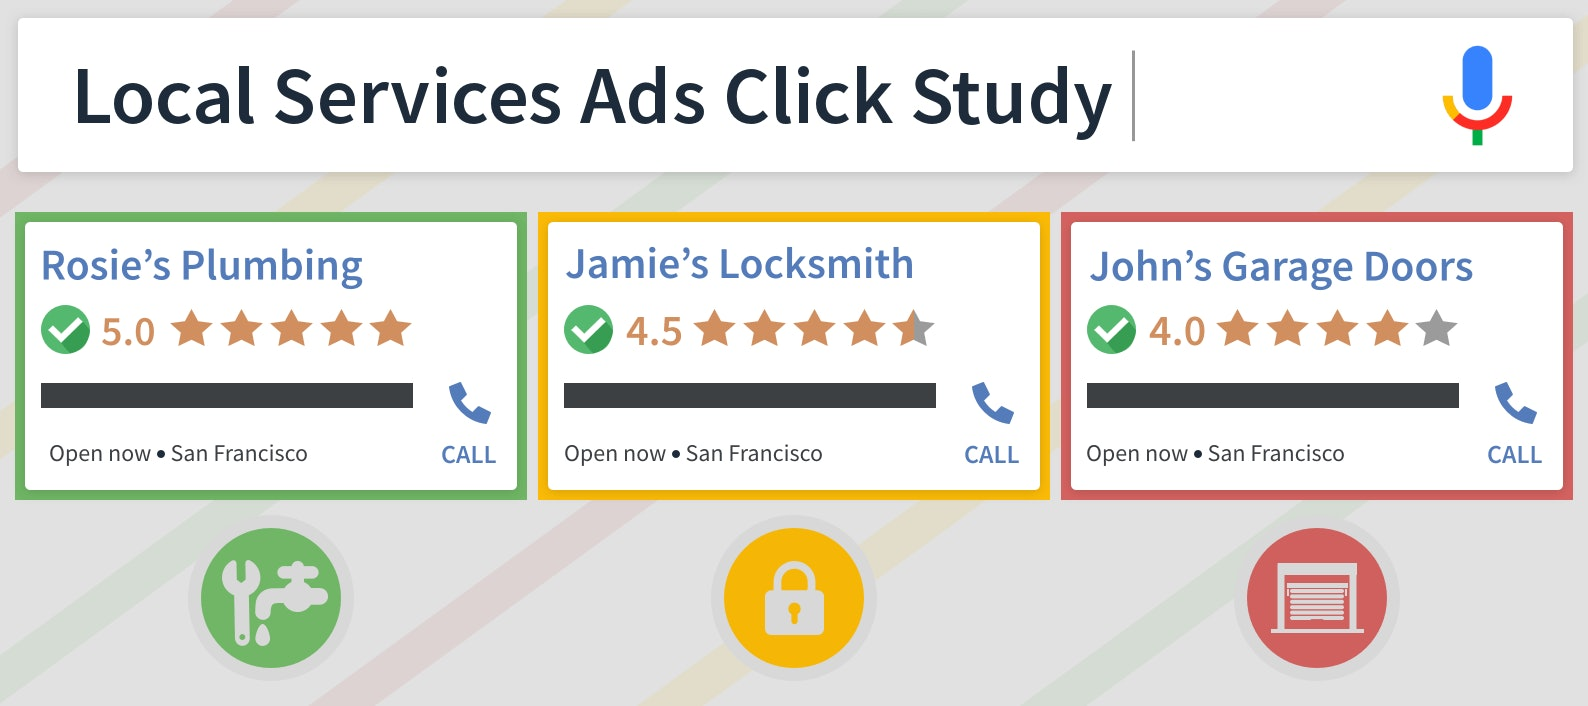 Local Services Ads Click Study